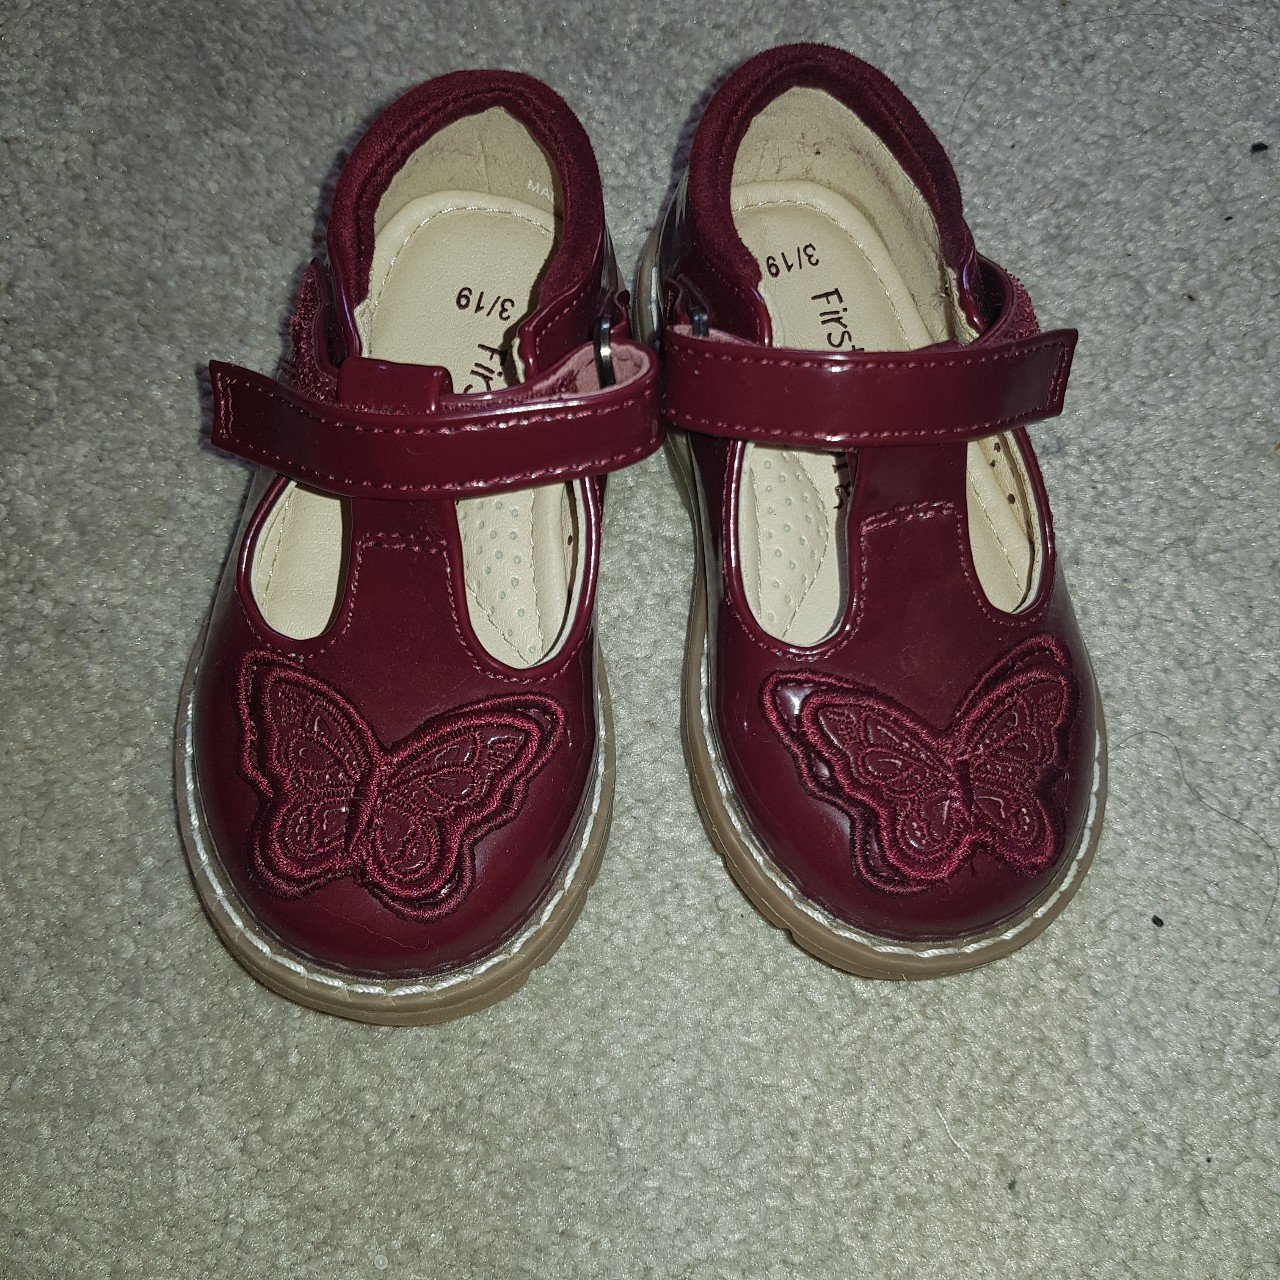 my first walkers. Size 3. Never worn